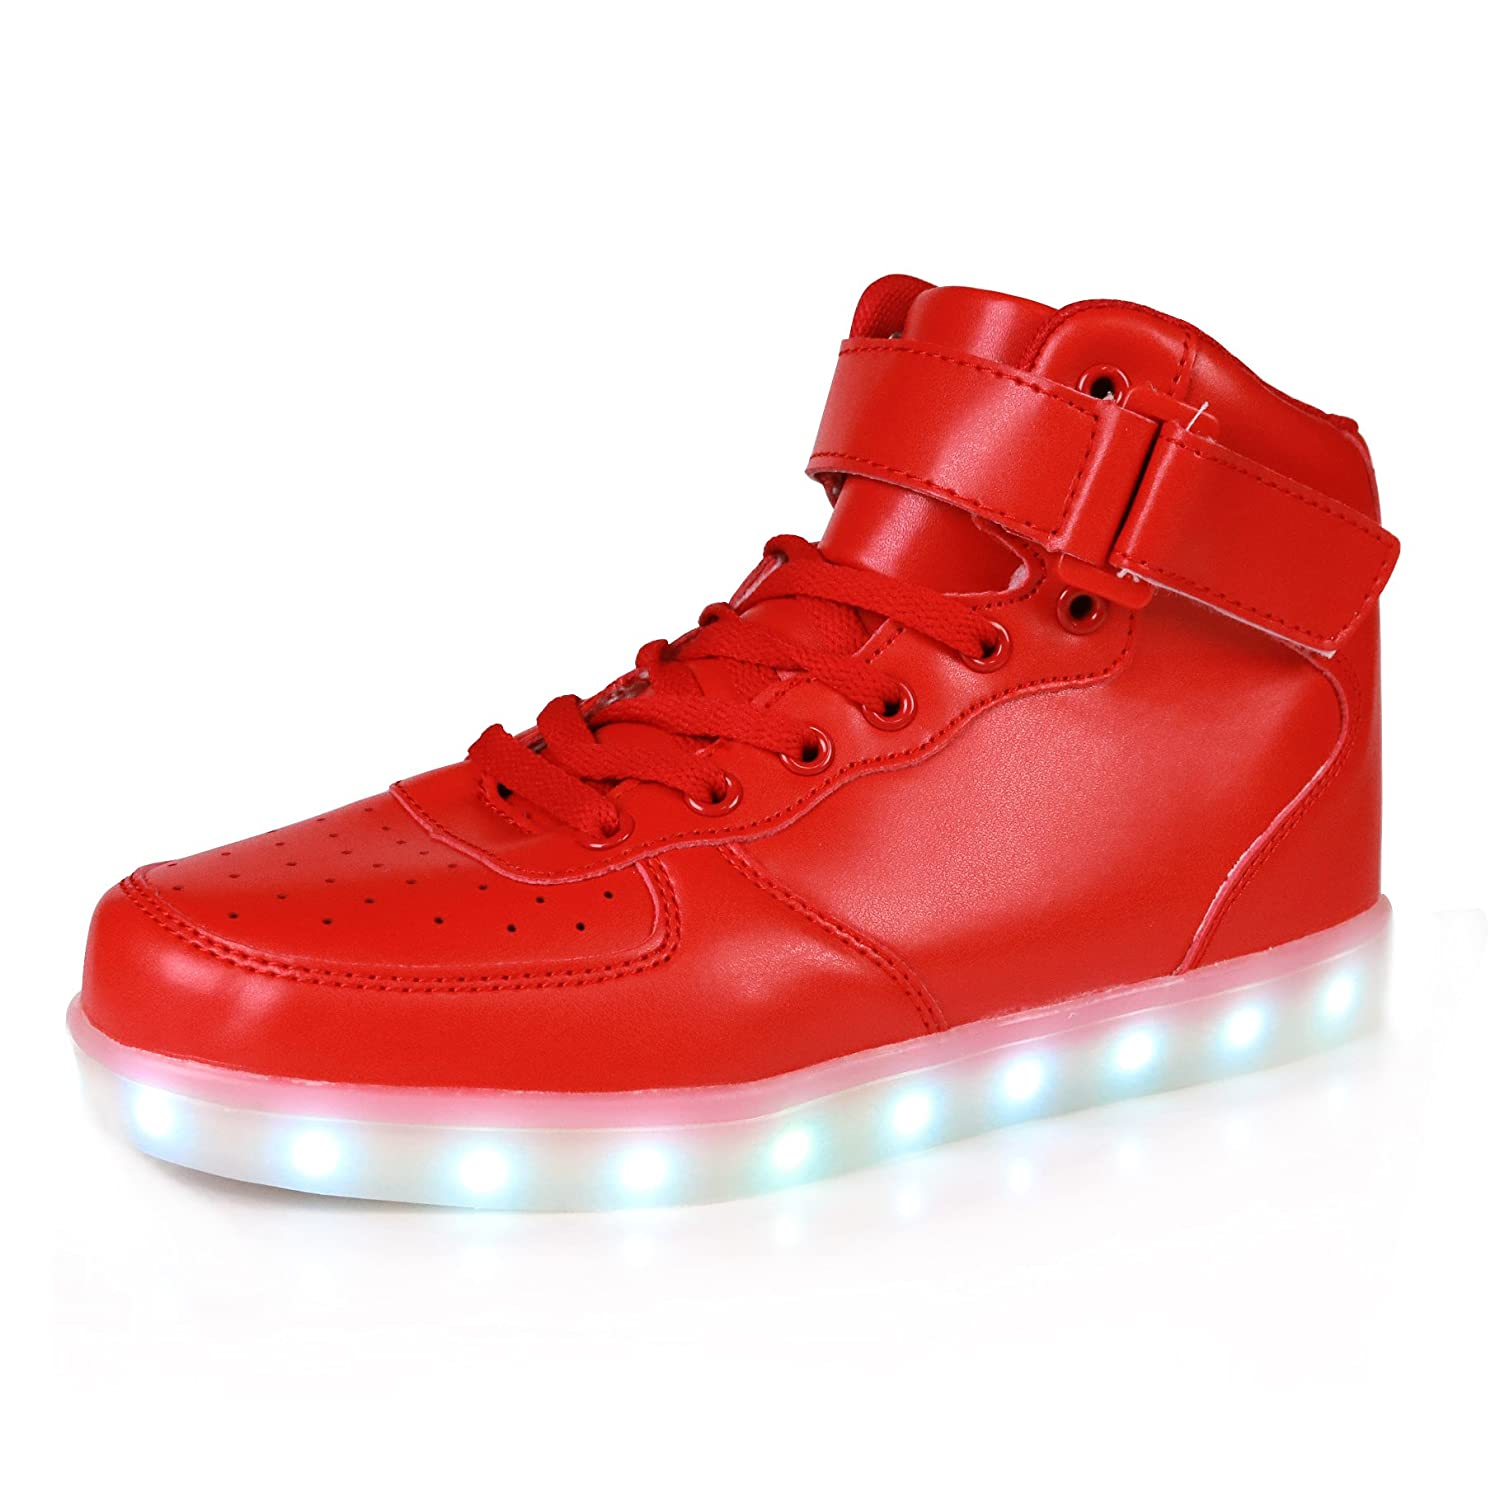 POMT Children's High Top USB Charging LED Light Casual Shoes Boys Girls Luminous Neon Basket Sneakers